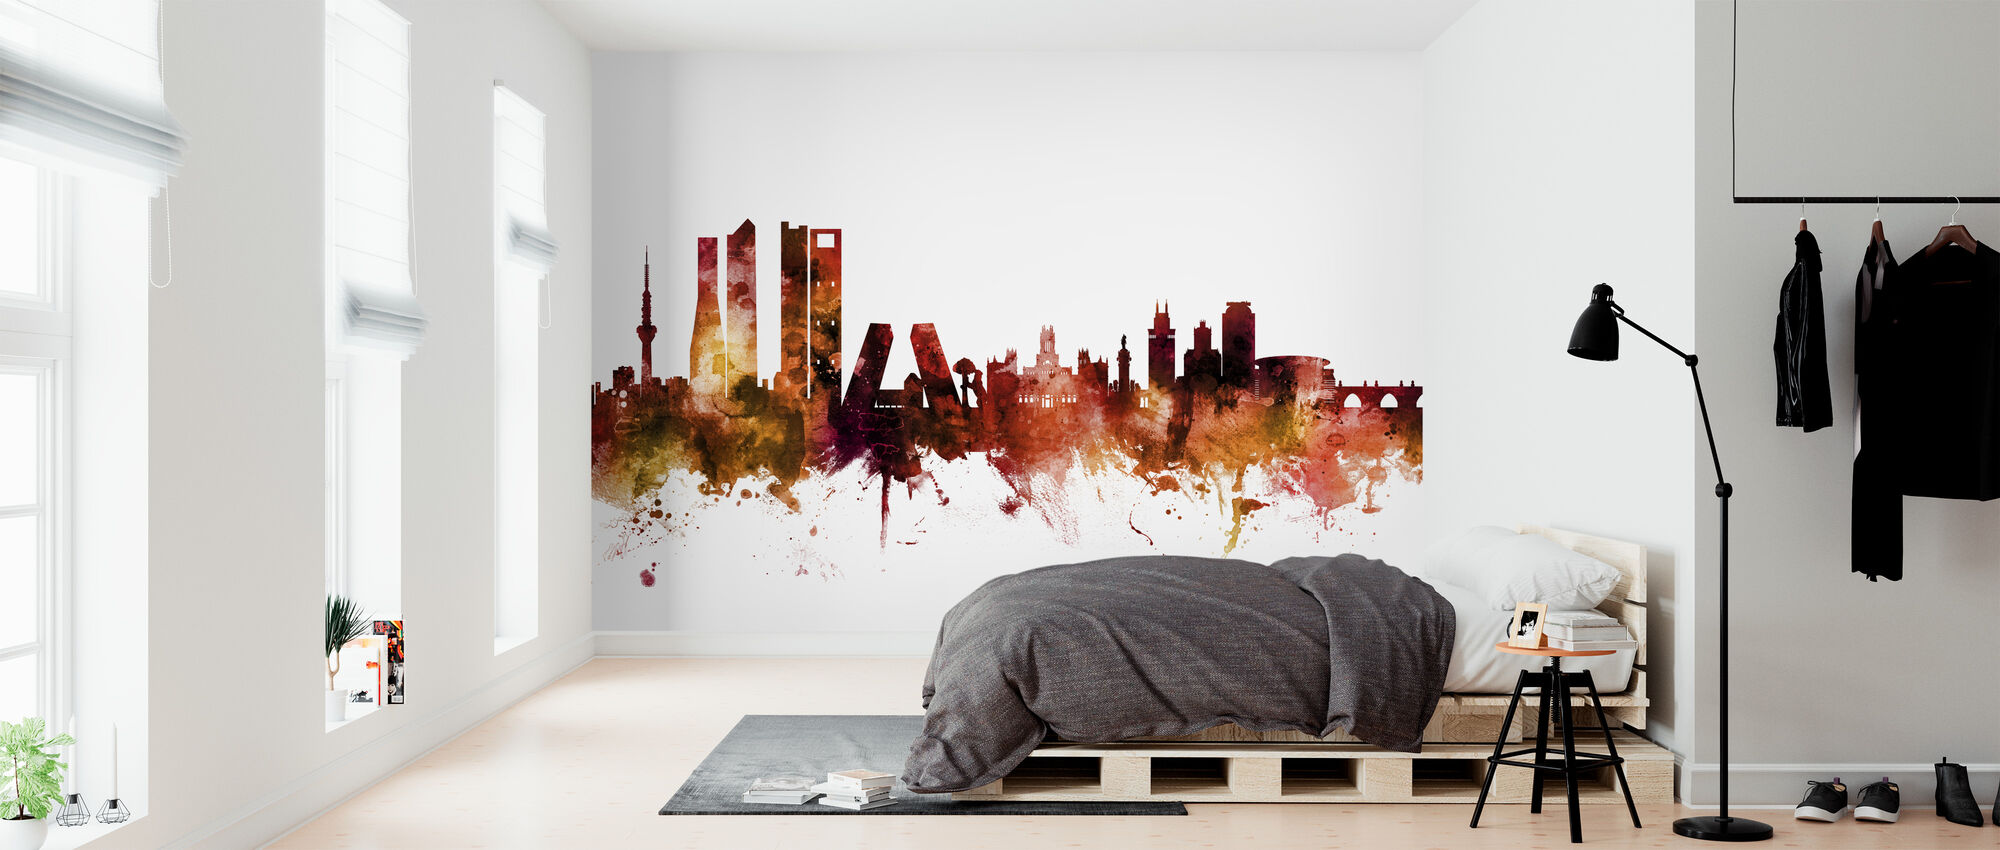 Madrid Spain Skyline - Wallpaper - Bedroom